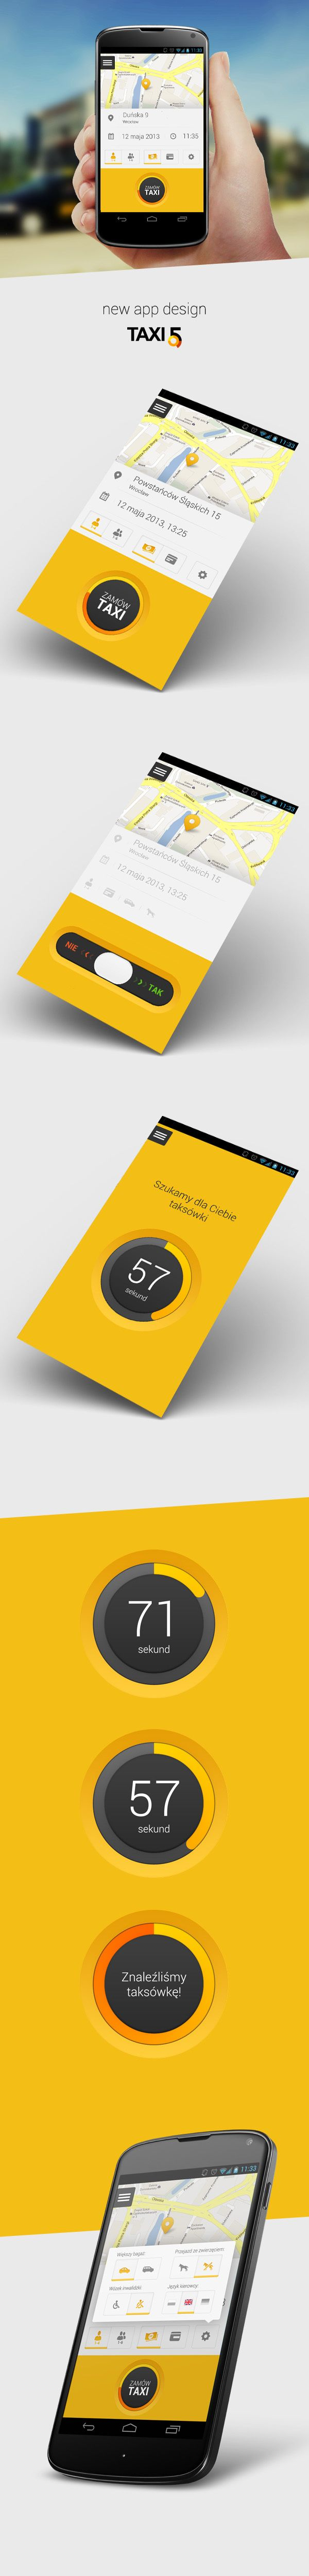 App Design for TAXI5 by Piotr Radziwon, via Behance